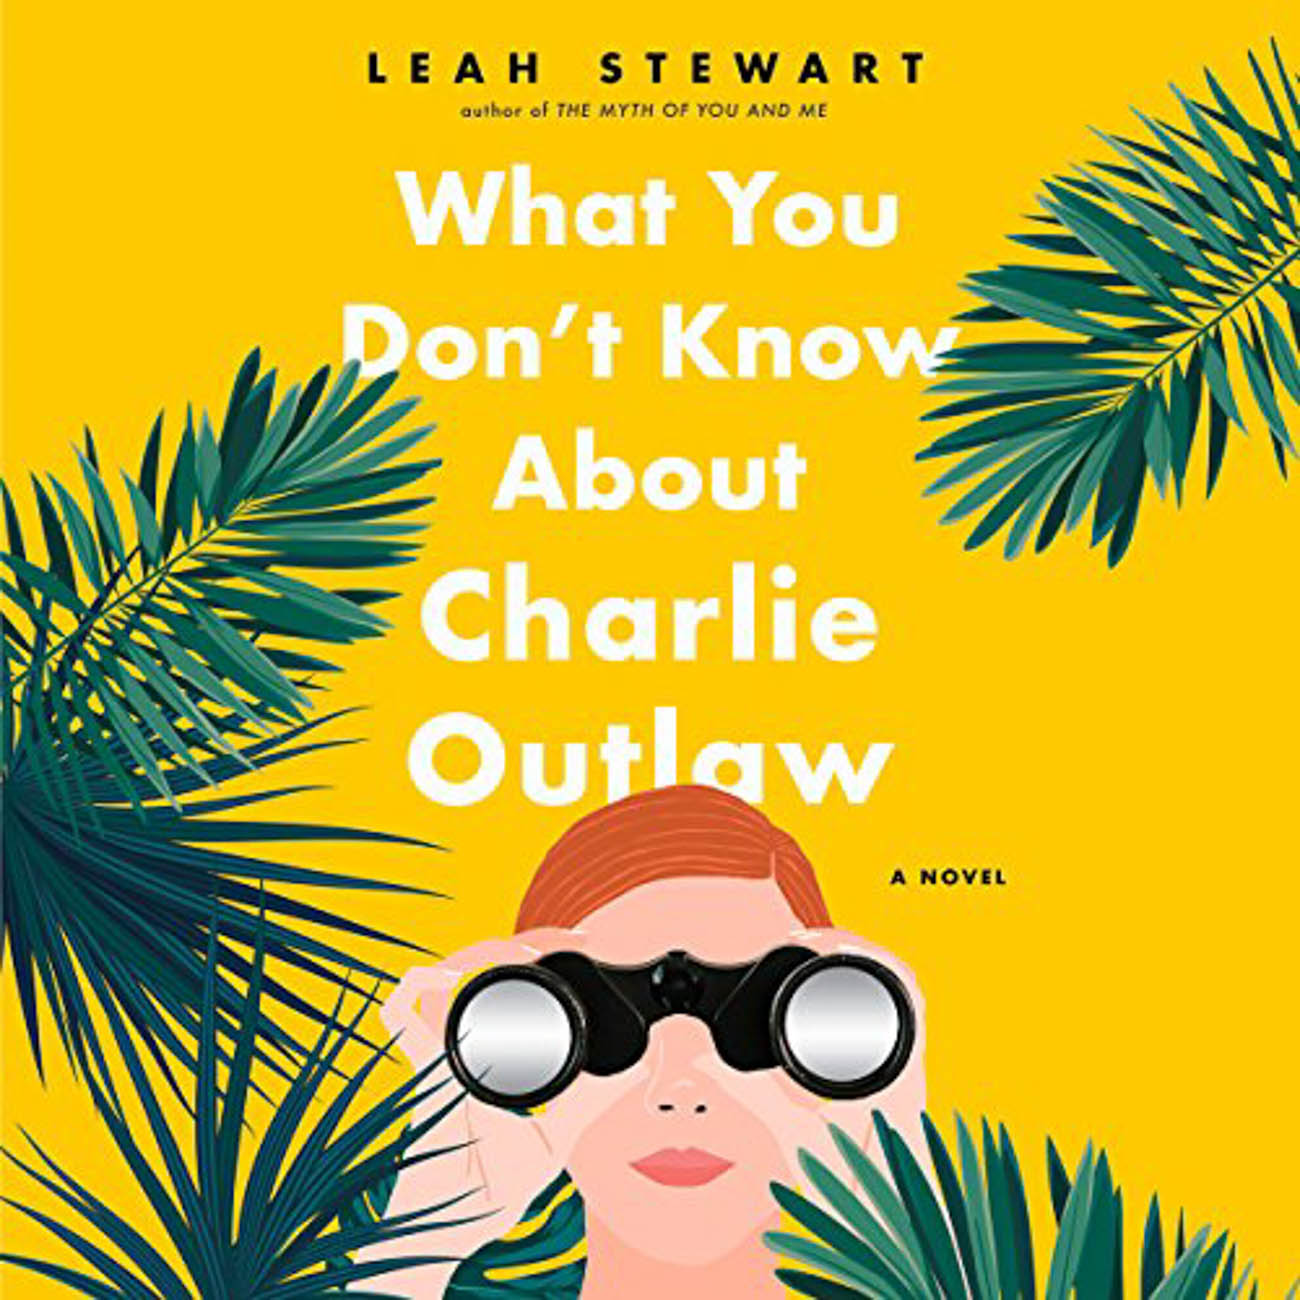 "Leah Stewart is a professor at the University of Cincinnati. Her 2018 novel, ""What You Don't Know About Charlie Outlaw"" was very well-reviewed. The book, as well as her other novels, ""The New Neighbor"", ""The Myth of You and Me"", ""Husband and Wife"", and ""The History of Us"" are all available for e-readers and in audio format. / Image courtesy of Audible // Published: 3.23.20"